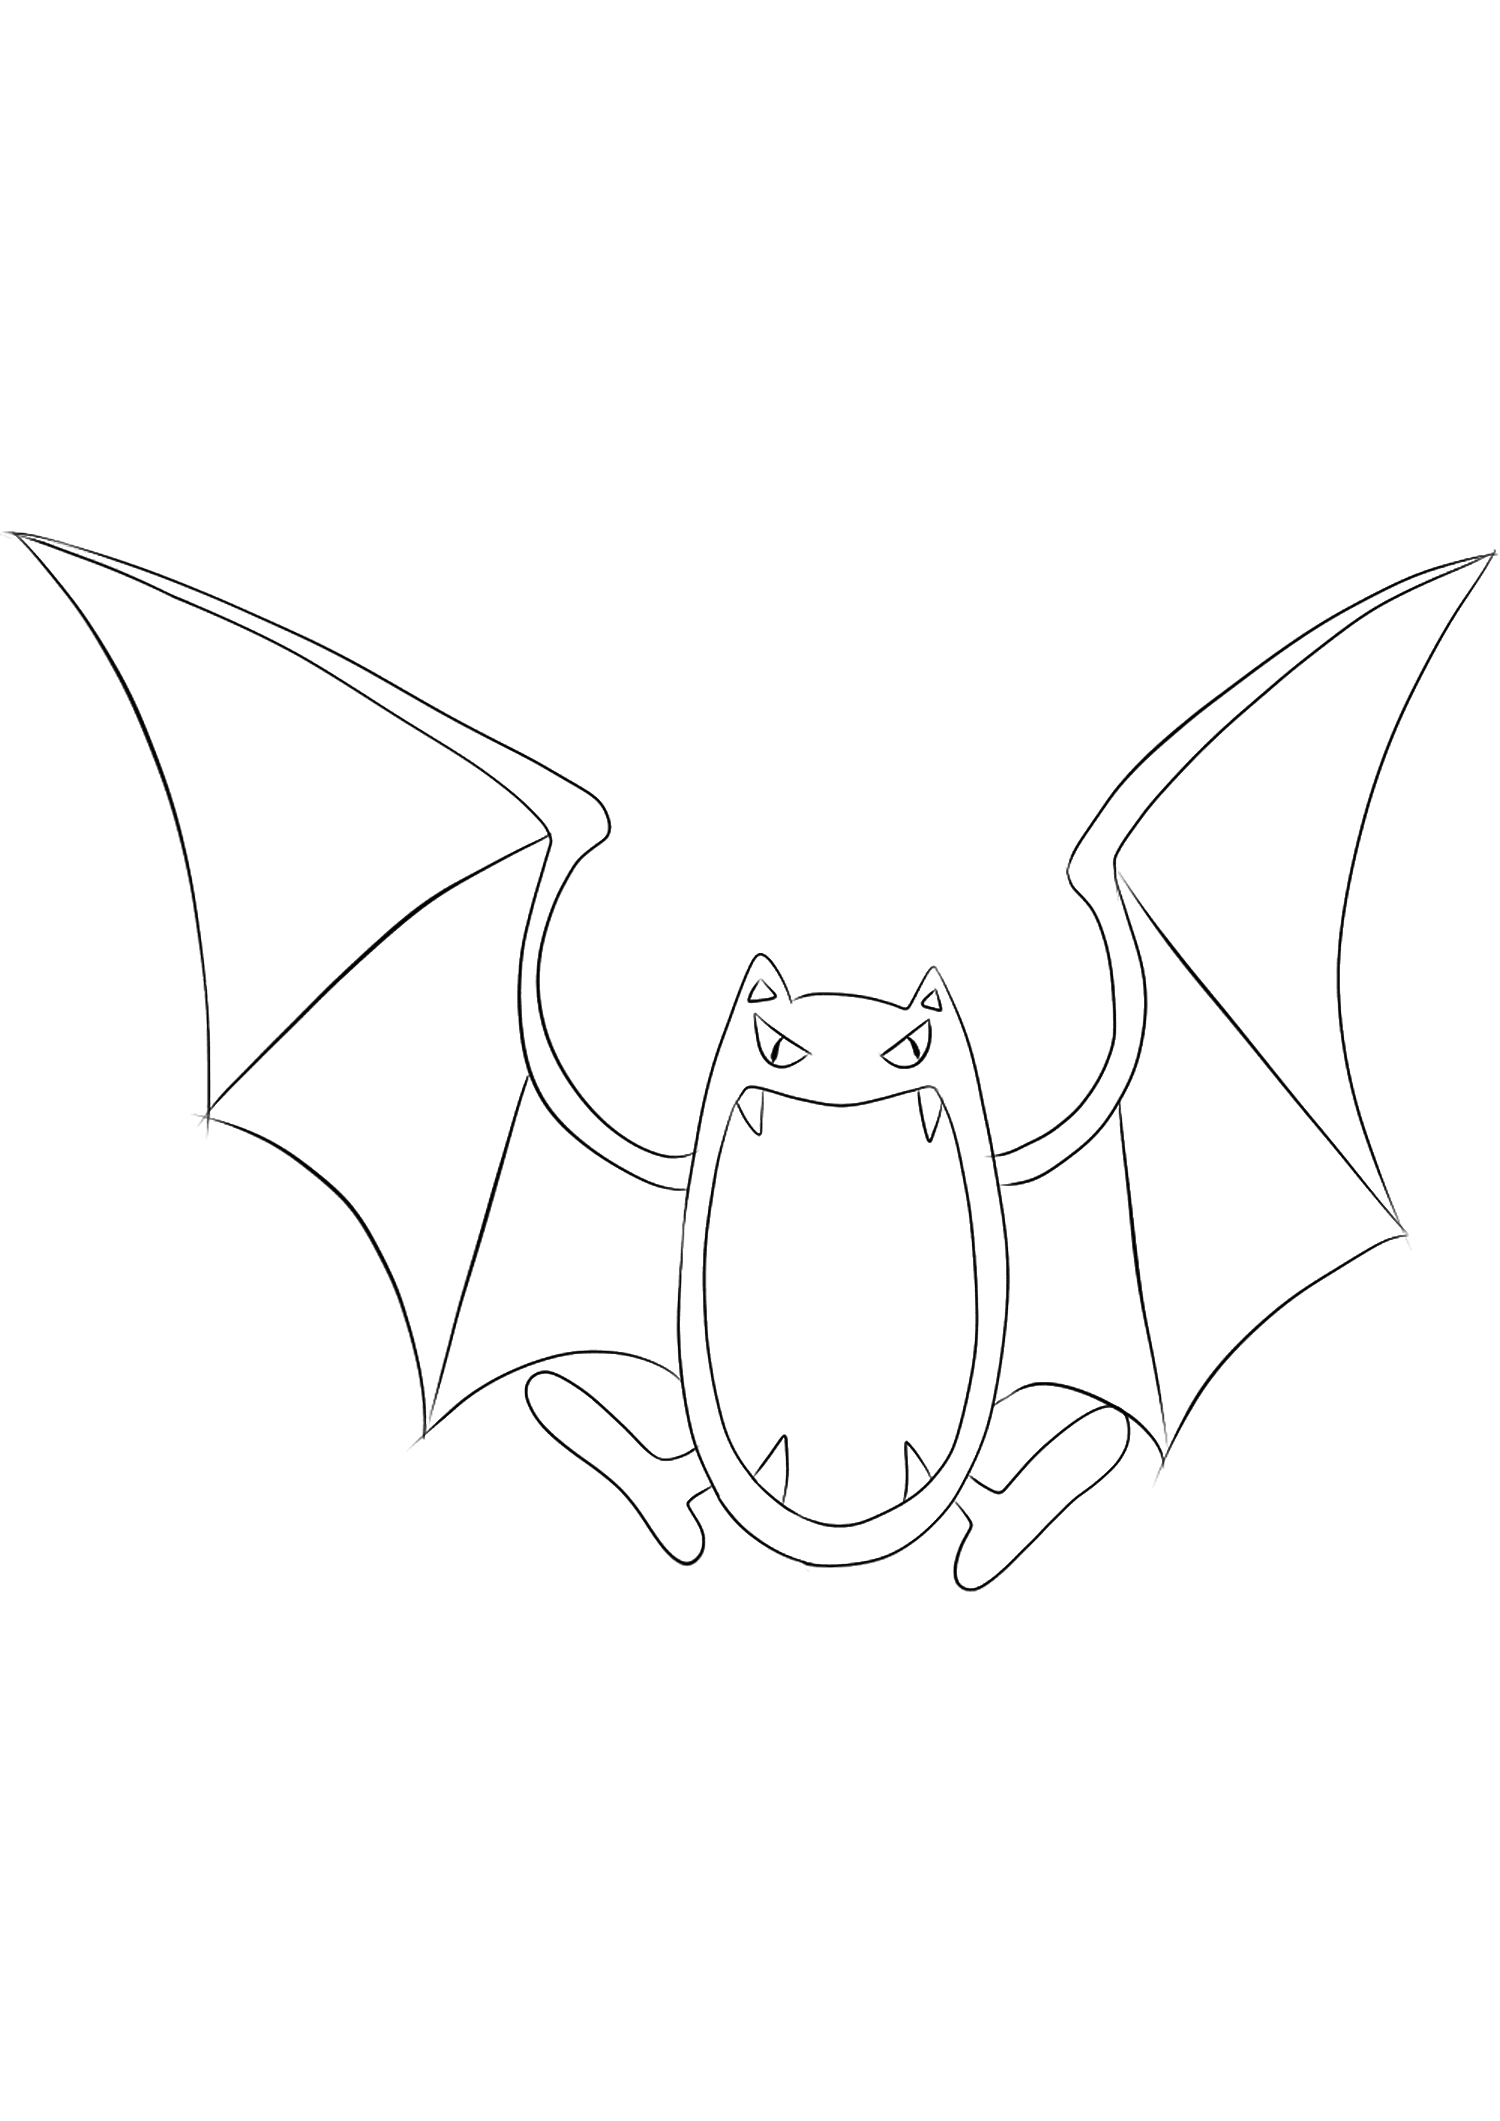 Golbat (No.42)Golbat Coloring page, Generation I Pokemon of type Poison and FlyingOriginal image credit: Pokemon linearts by Lilly Gerbil'font-size:smaller;color:gray'>Permission: All rights reserved © Pokemon company and Ken Sugimori.